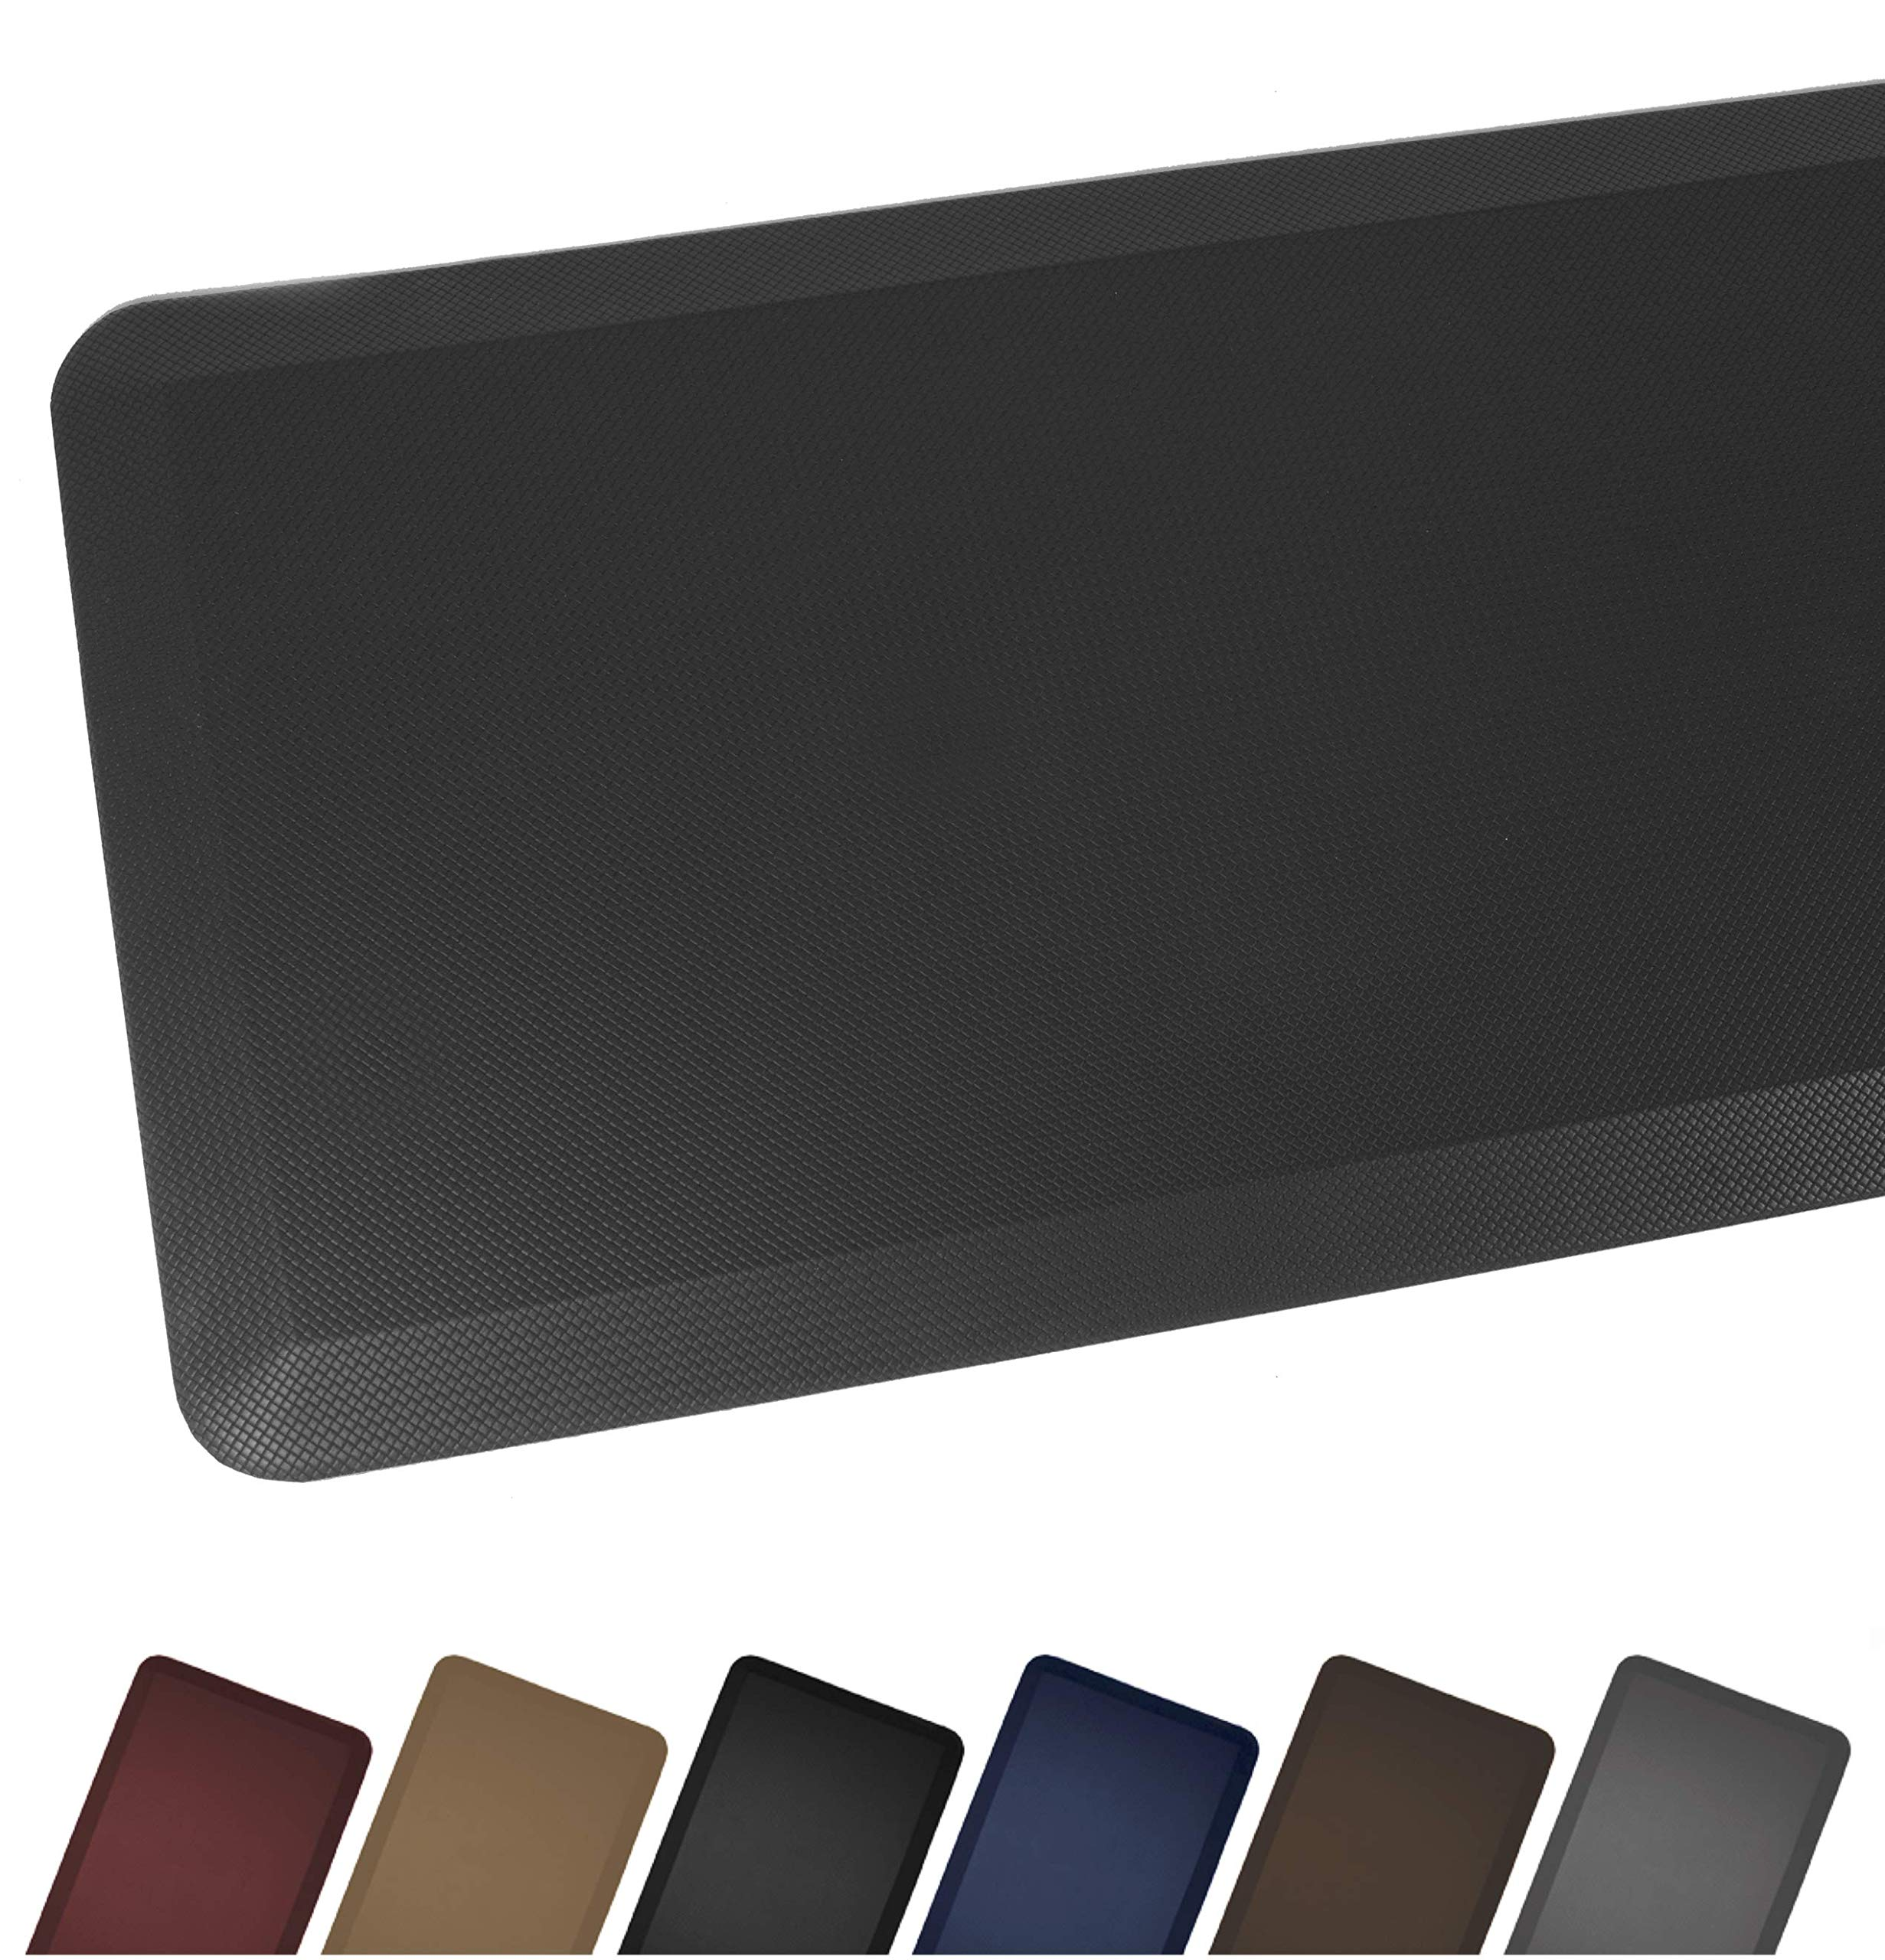 Sky Mats, Comfort Anti Fatigue Mat 20 x 39 x 3/4'', 7 Colors and 3 Sizes, Perfect for Kitchens and Standing Desks, (Black) by Sky Solutions